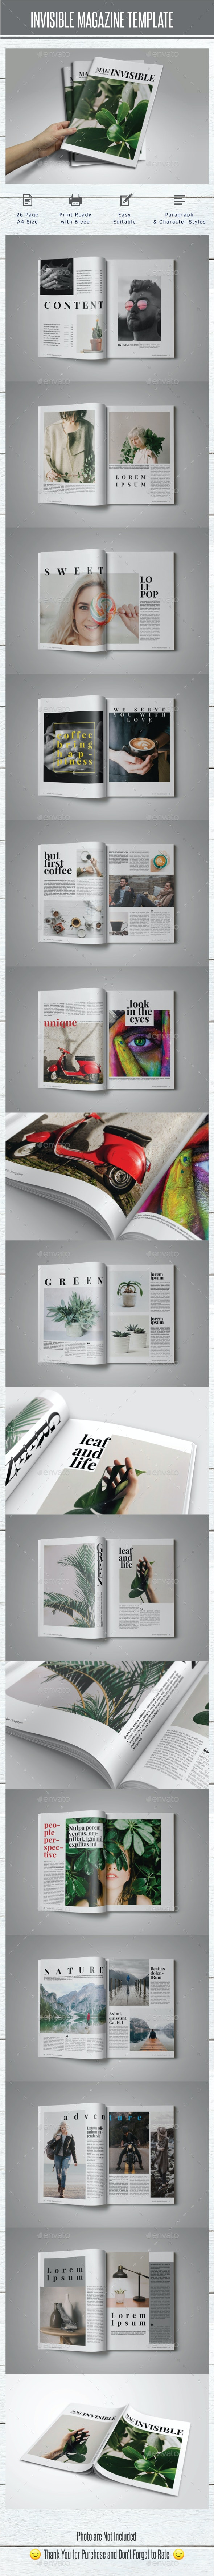 Invisible Magazine Template - Magazines Print Templates